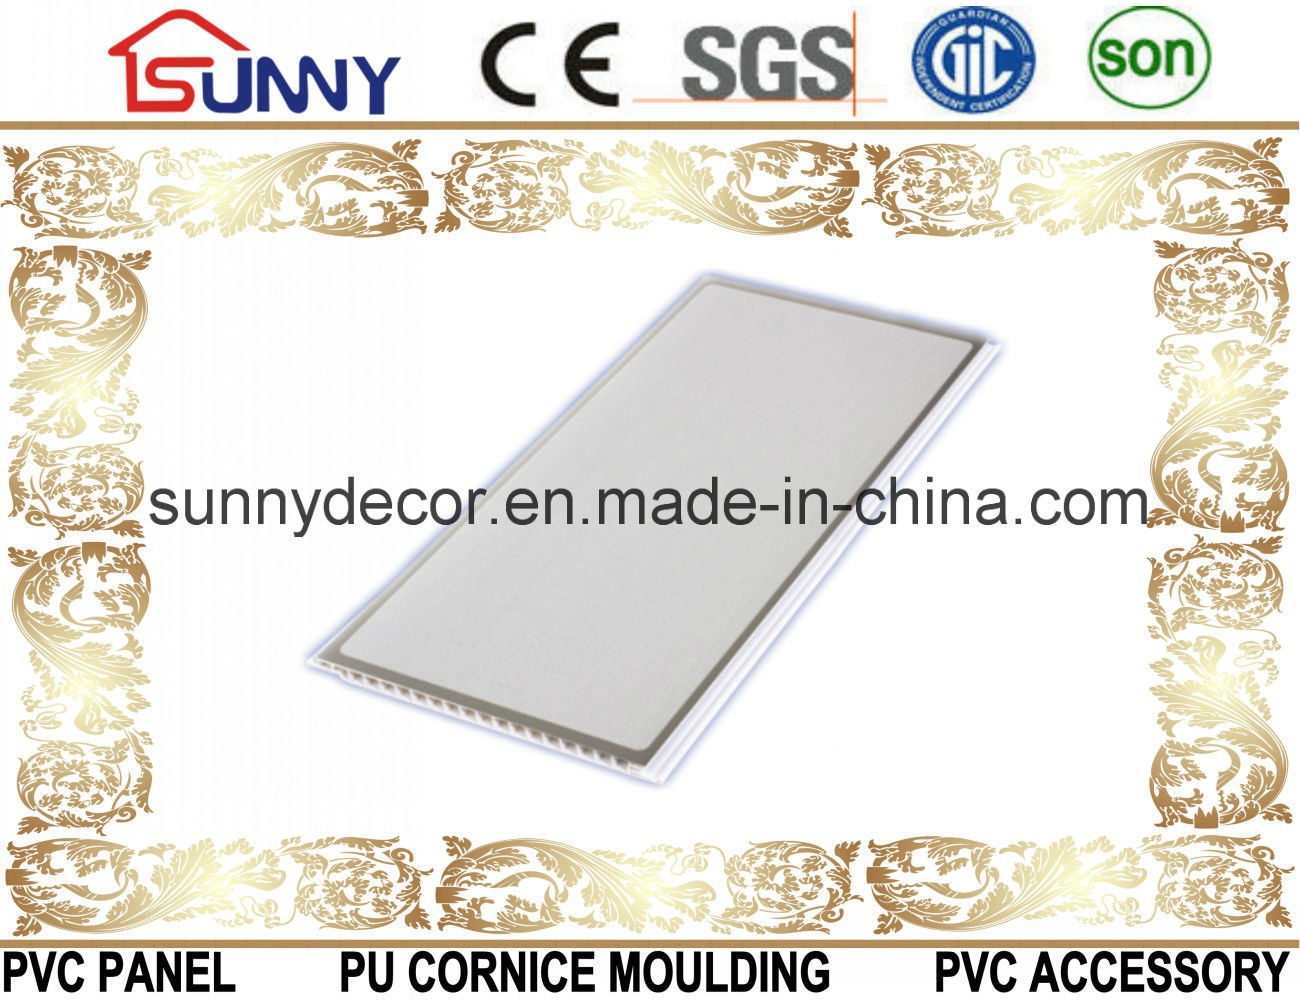 2016 Hot Stamping PVC Panel for Ceiling and Wall Decoration Building Material